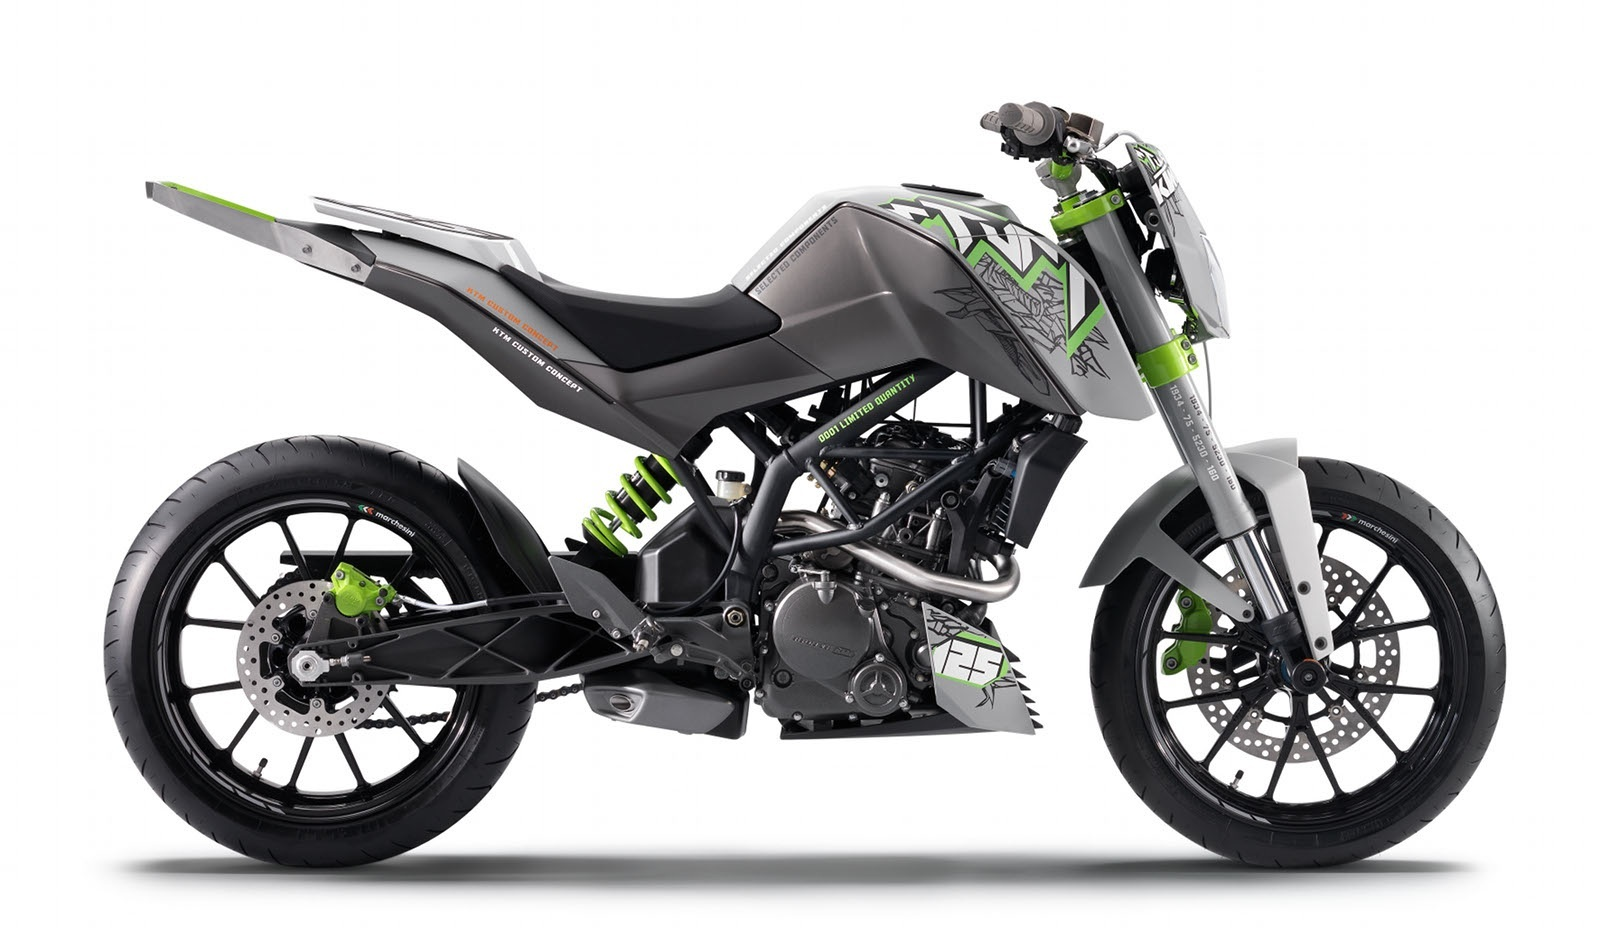 The 2011 Bajaj Pulsar 250cc / 350cc could be powered by parallel twin, 4-valve, DOHC engines co-developed with KTM